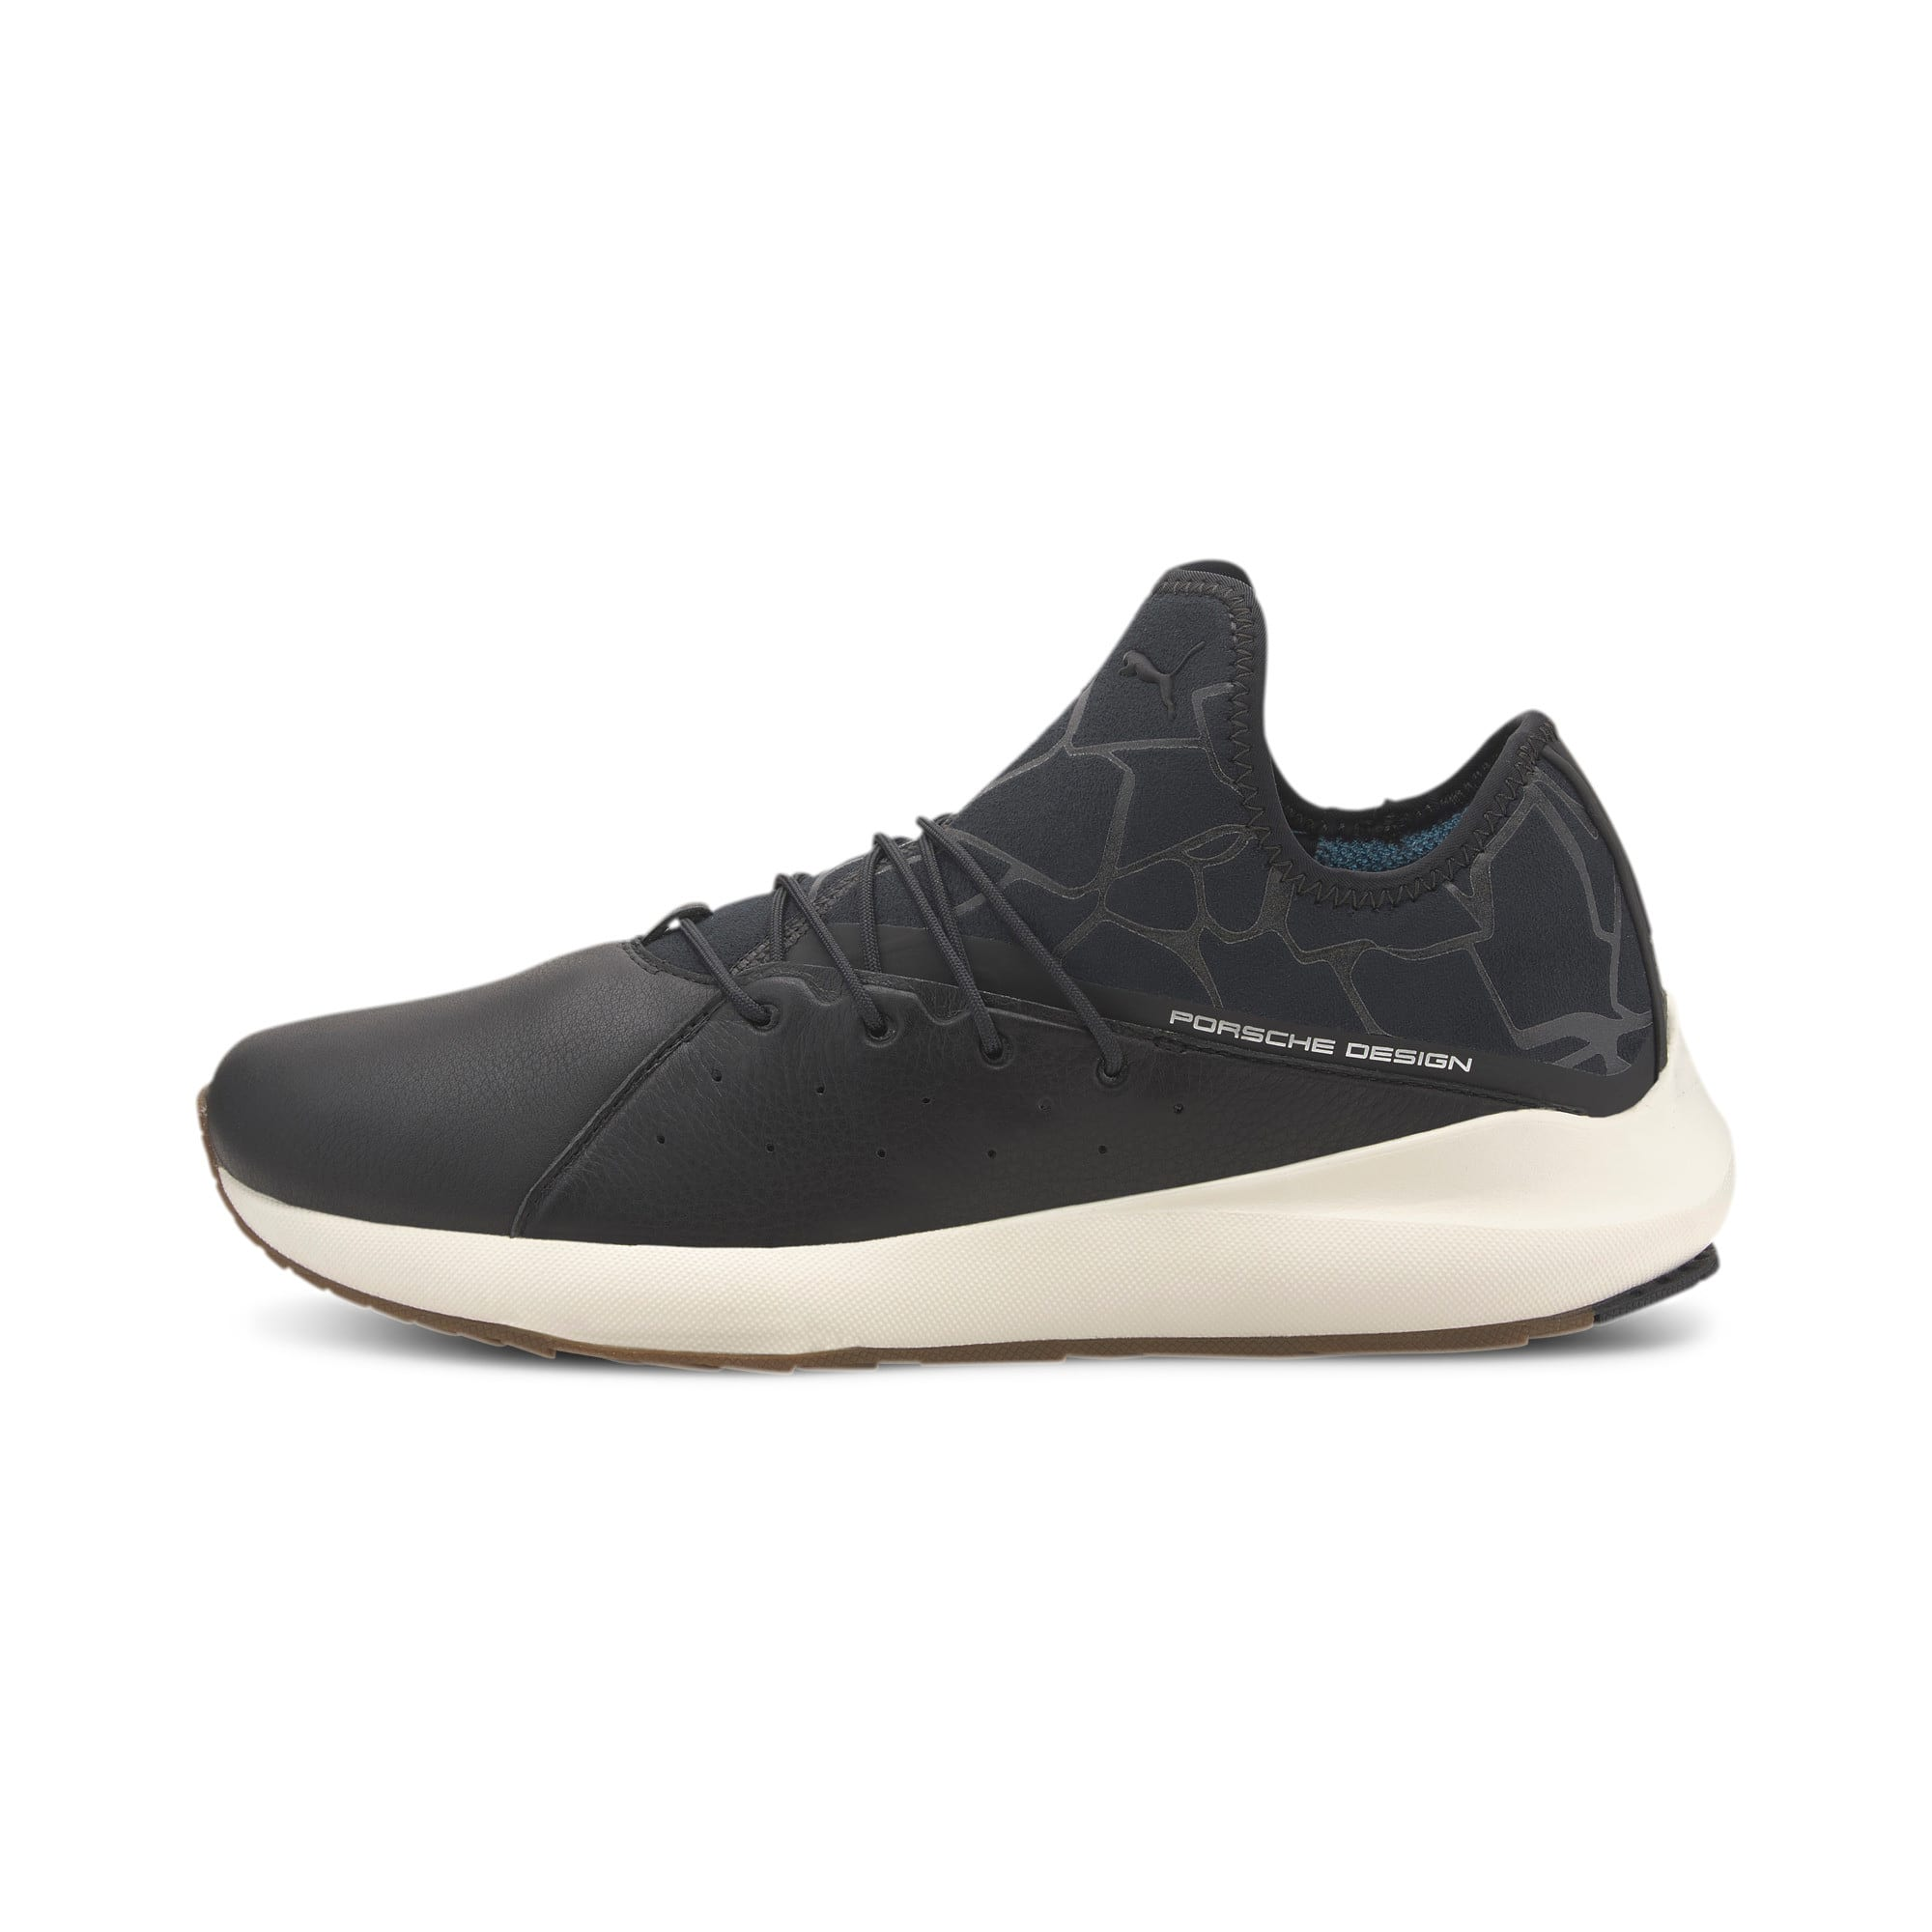 Thumbnail 1 of Porsche Design Evo Cat II Men's Trainers, JetBlack-JetBlack-WhisperWht, medium